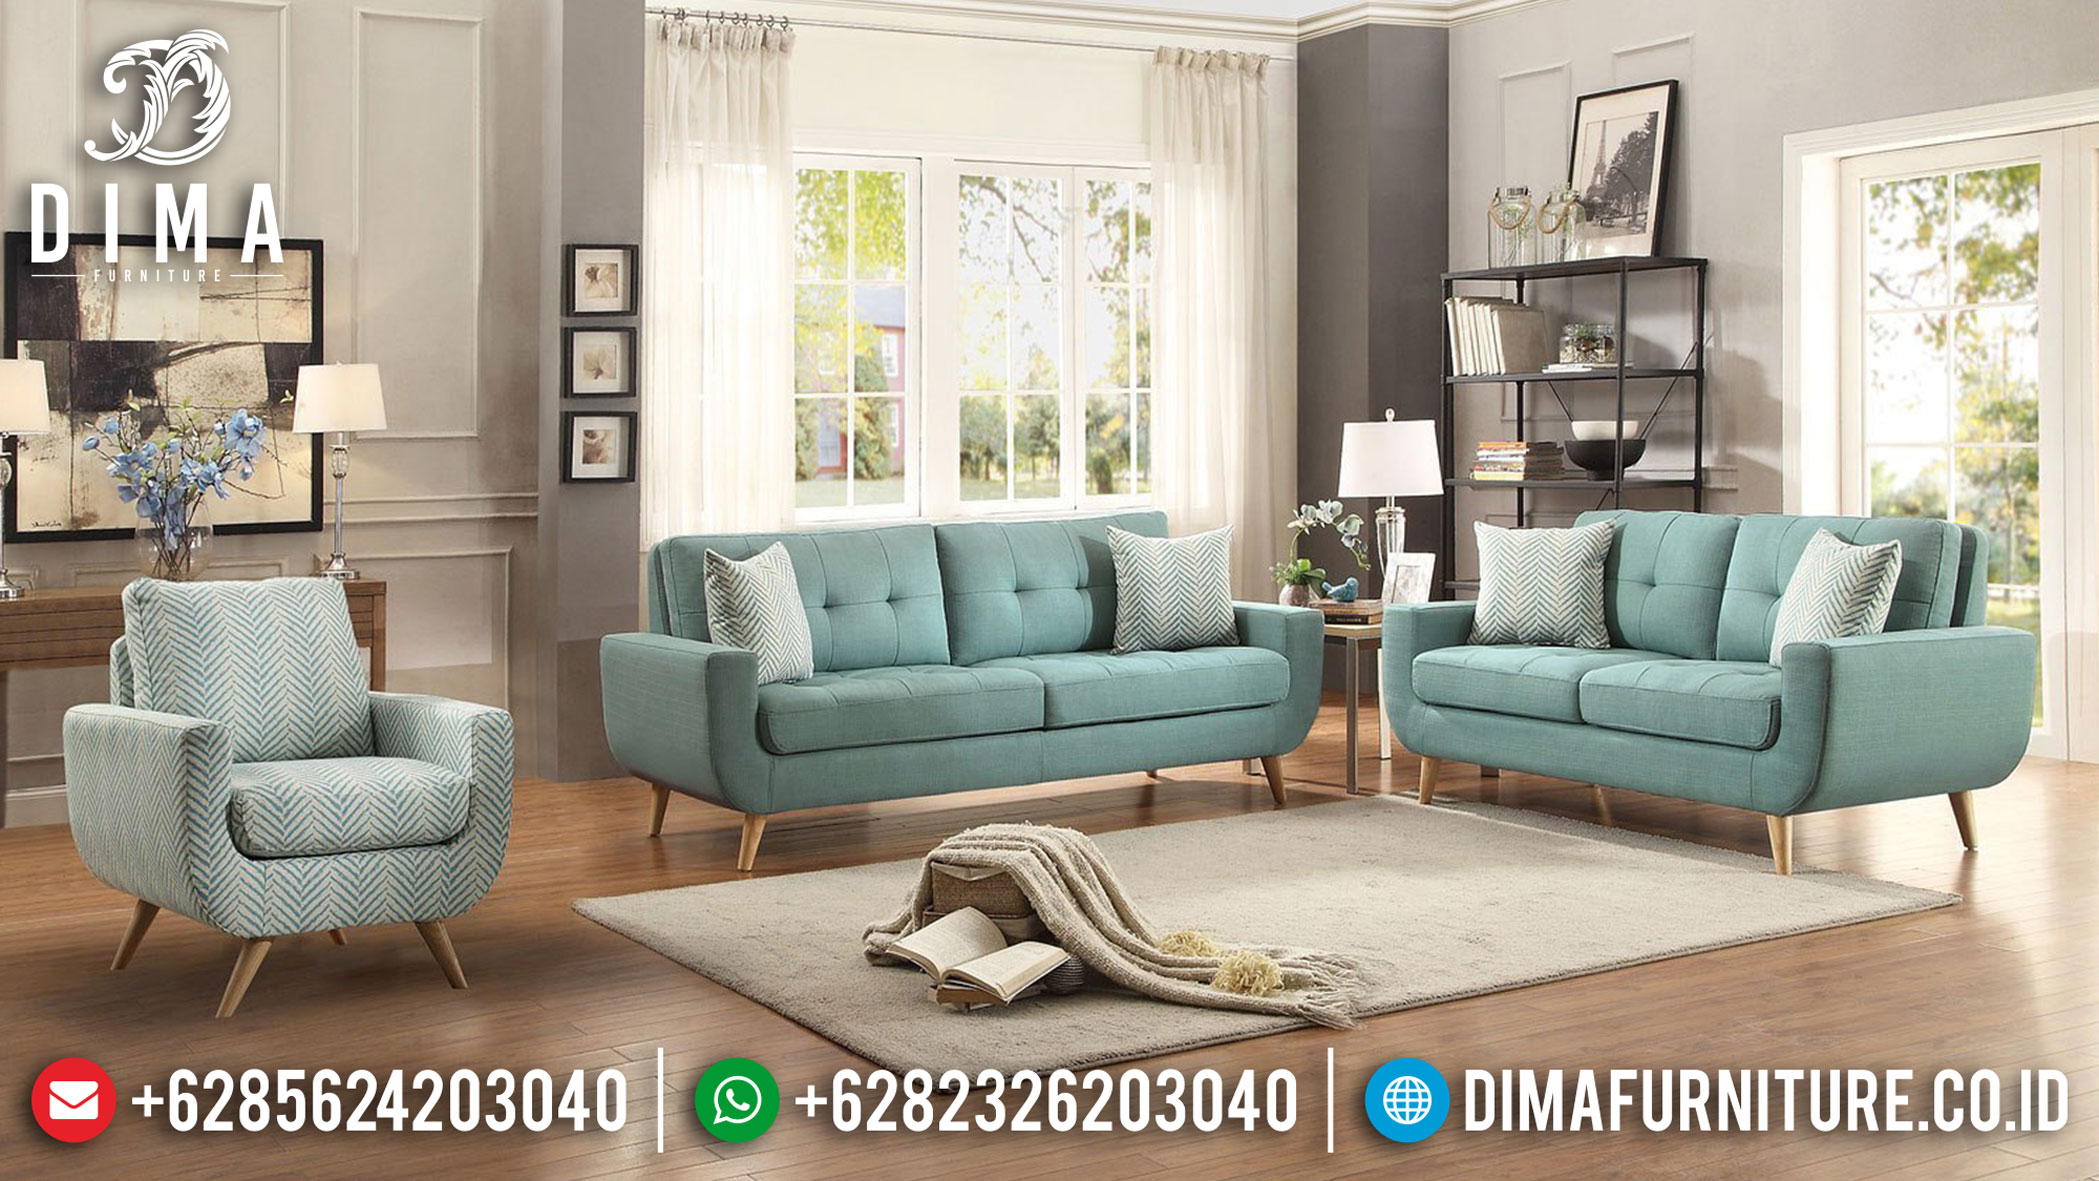 Sofa Tamu Jepara Minimalis Modern Style New Years Sale End Mebel Jepara TTJ-1197